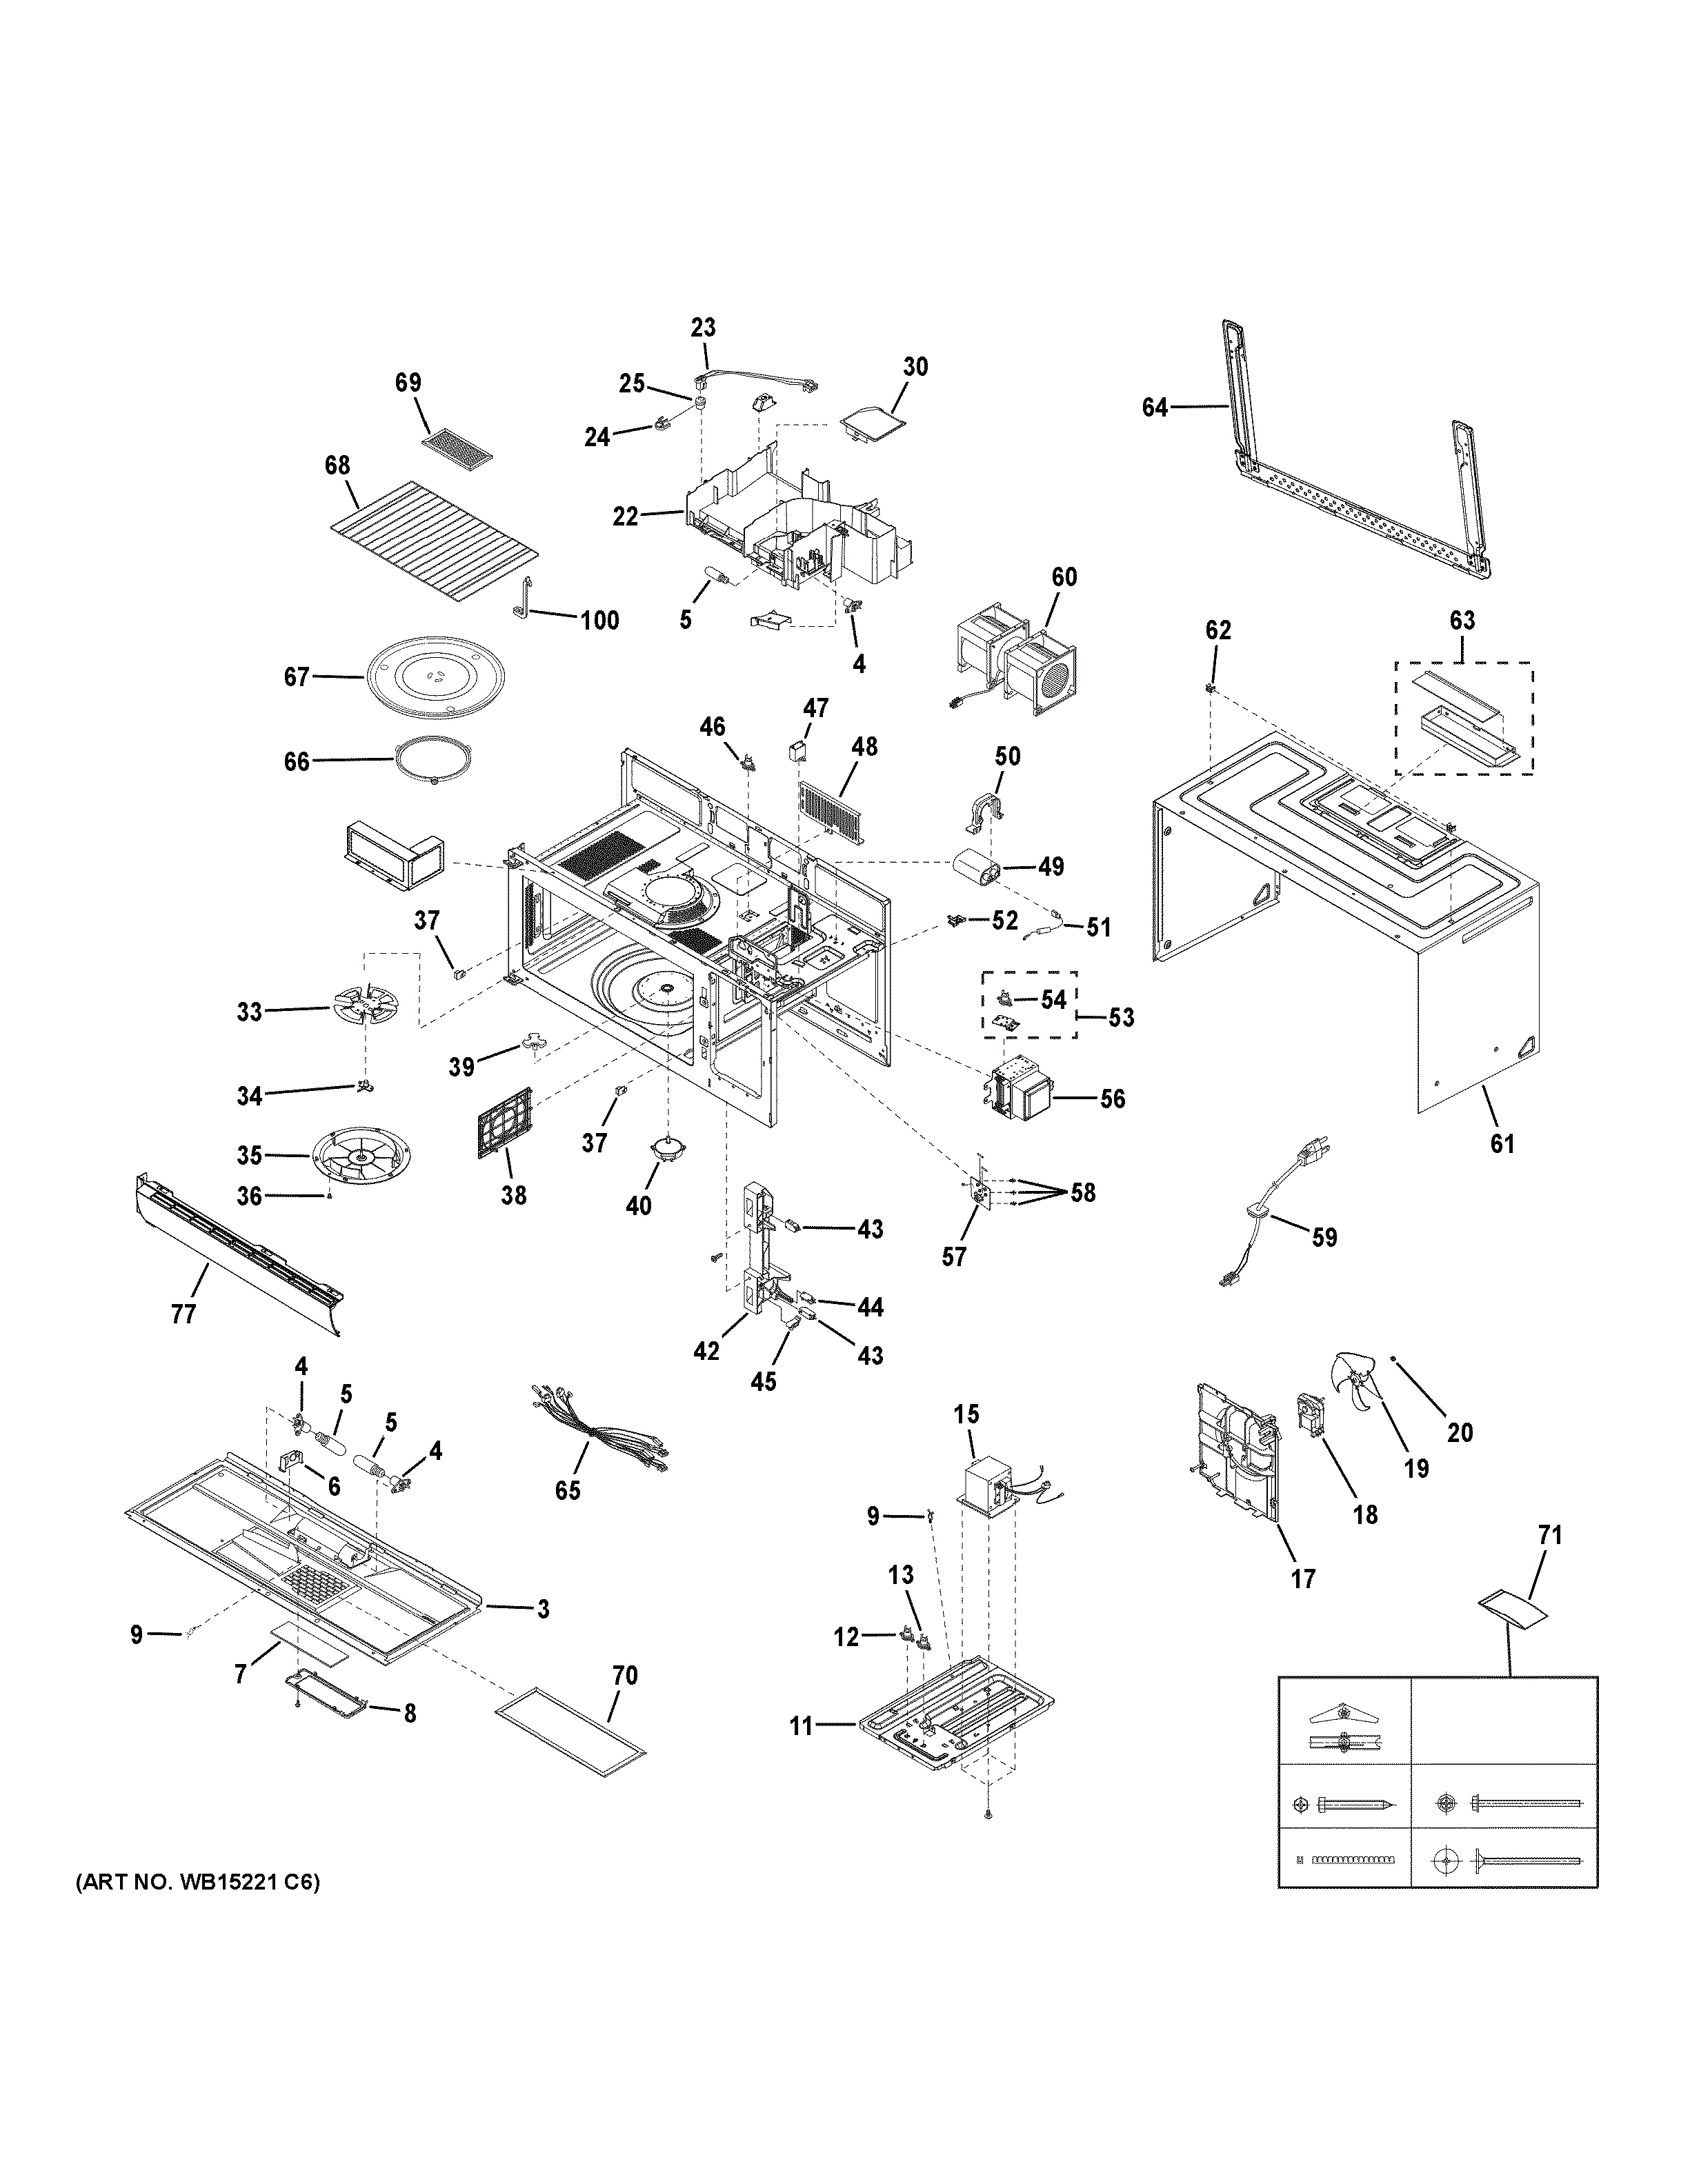 Assembly View For Oven Cavity Parts Jvm6175ef1es